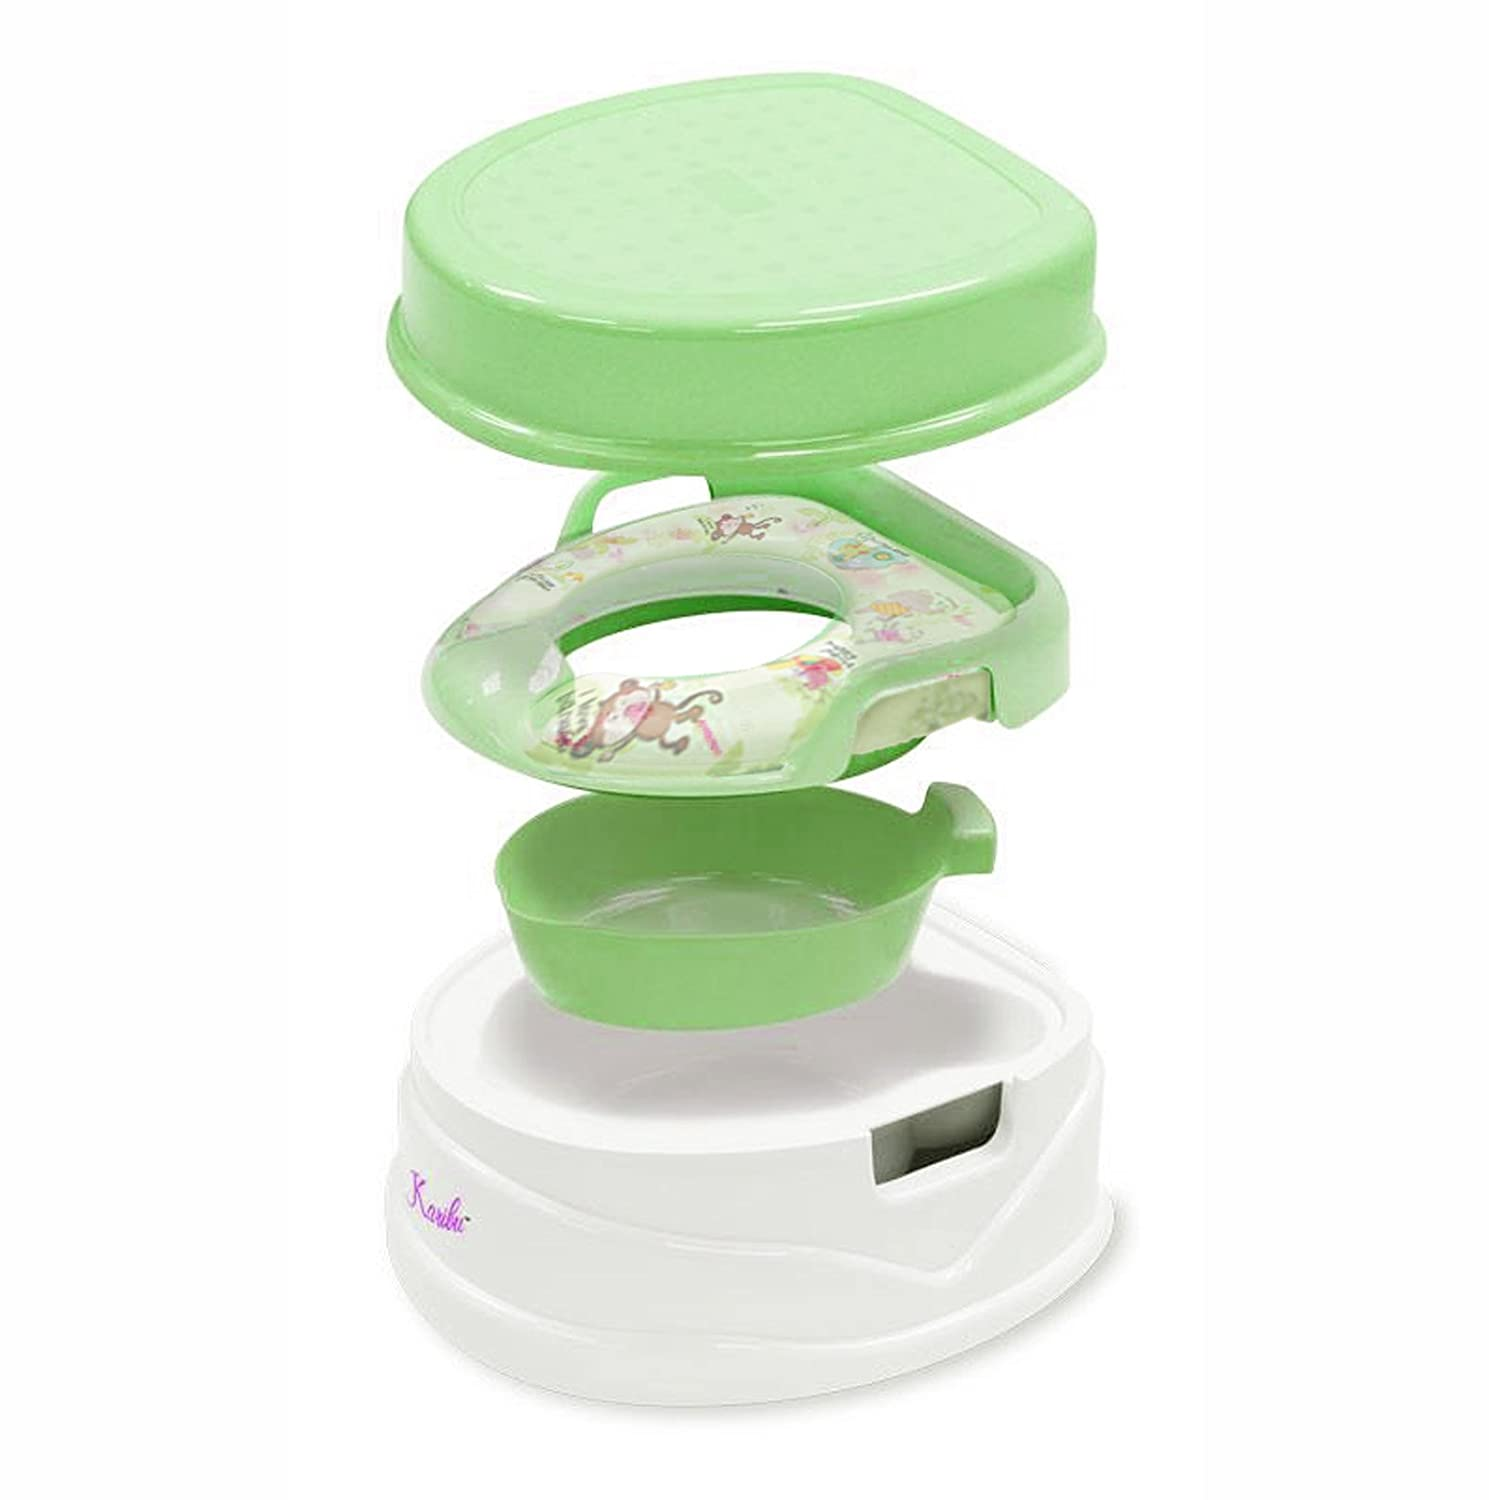 Karibu 3-in-1 Potty Training Step Stool and Soft Seat with Handle (Green) Amazon.co.uk Baby  sc 1 st  Amazon UK & Karibu 3-in-1 Potty Training Step Stool and Soft Seat with Handle ... islam-shia.org